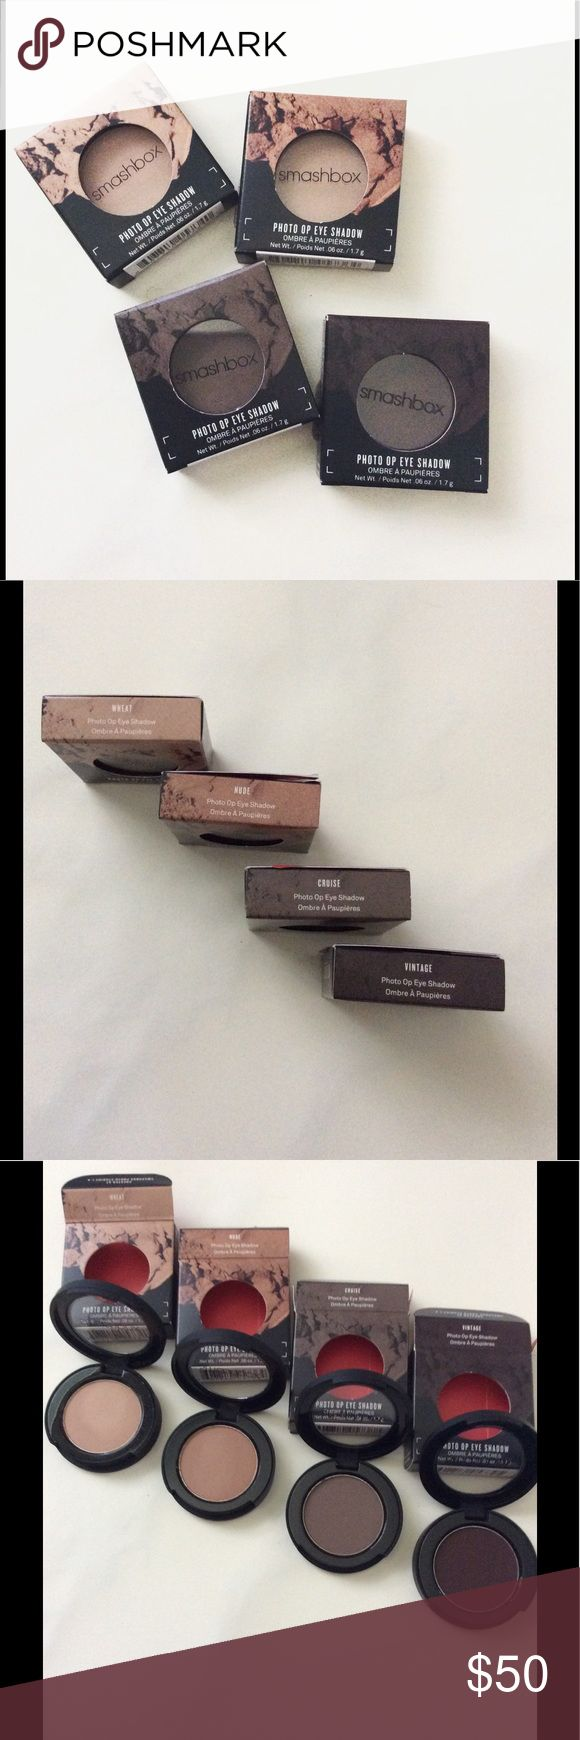 Smashbox Eyeshadows (4 total) Brand new, in box, never been used or swatched.  4 Eyeshadows total in this listing. All sold together for listed price. For individual sale, they will be $10 each.   All typically sold for $18+tax in store.  Colors: Vintage Cruise Nude Wheat  As I was closing cruise after taking photos, my nail nicked it a bit. I tried to rub it out a little so you will see a tiny tiny nick and a little rubbed area. Smashbox Makeup Eyeshadow